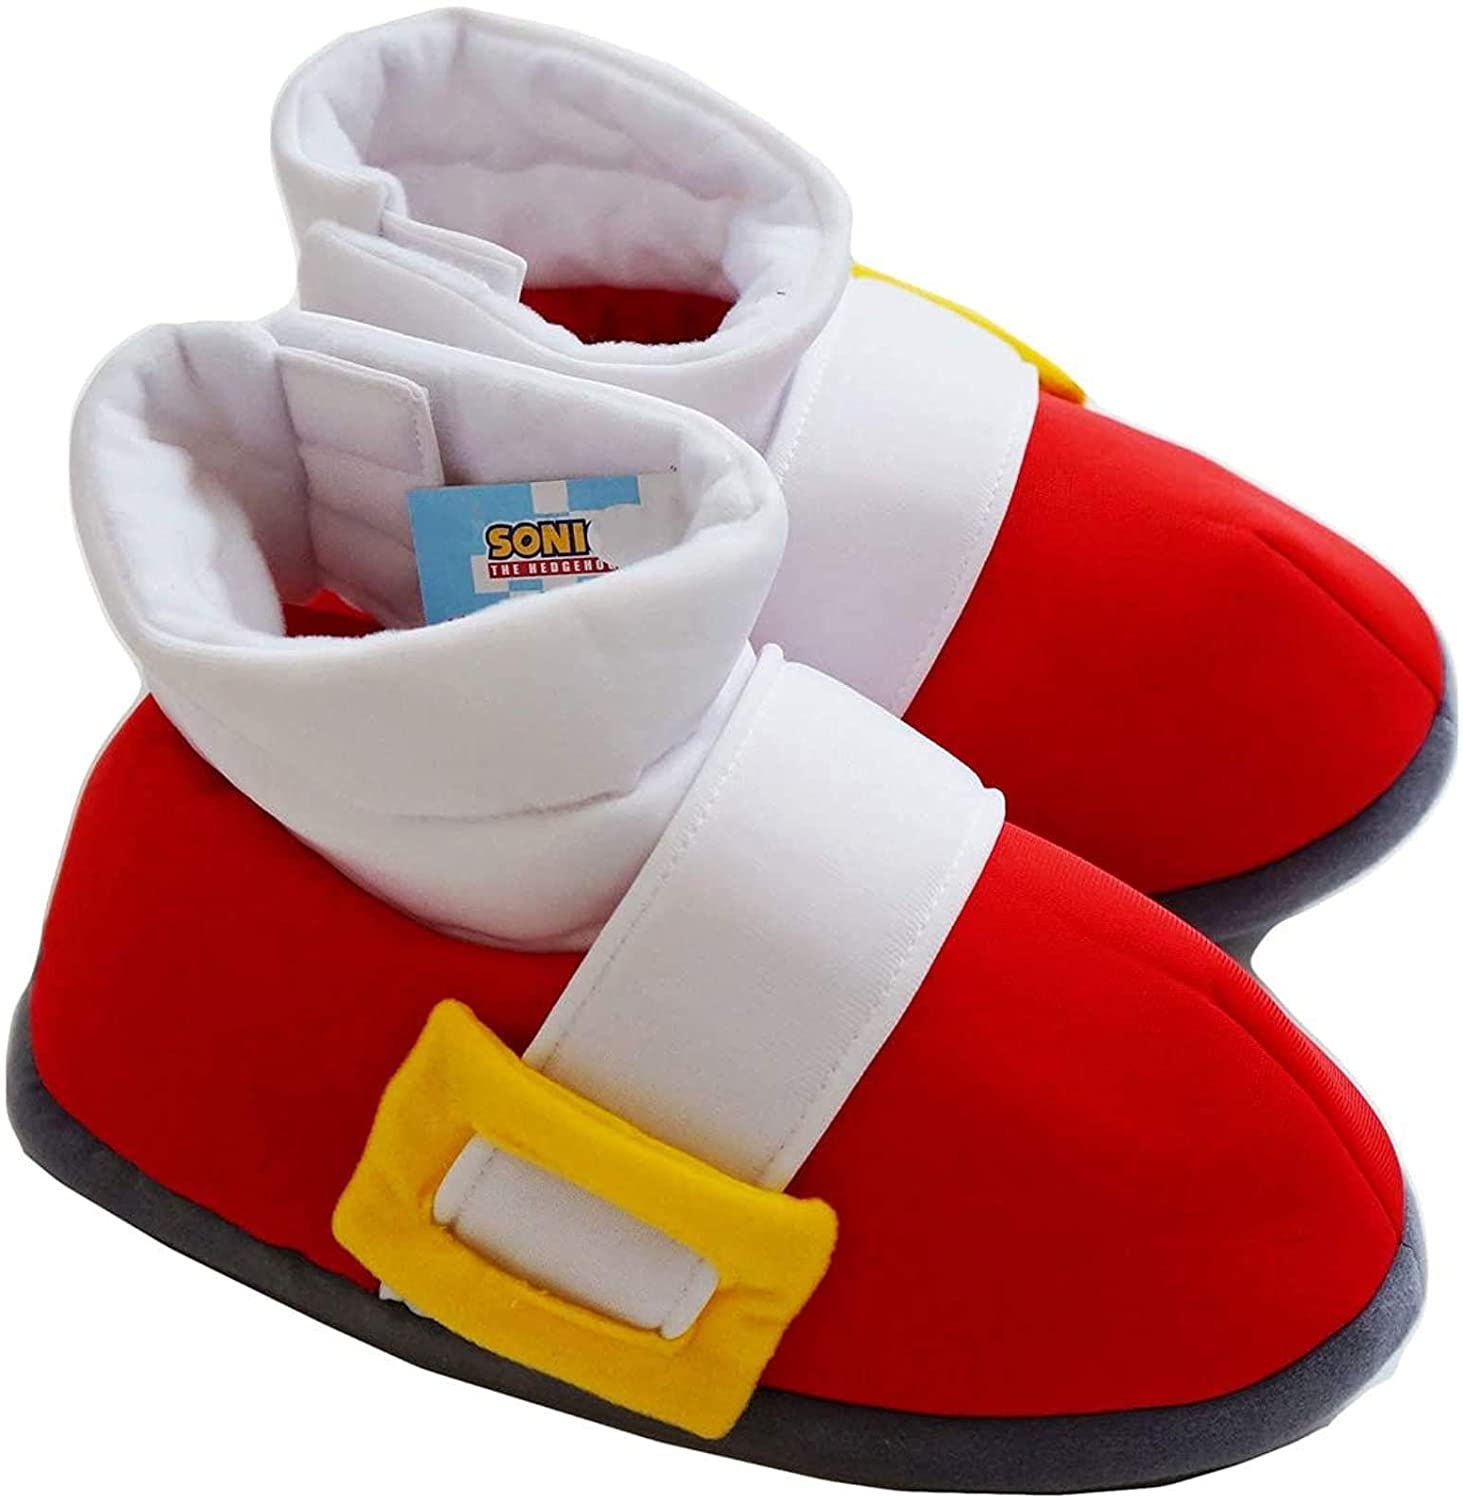 Sonic the Hedgehog Red Running Shoes